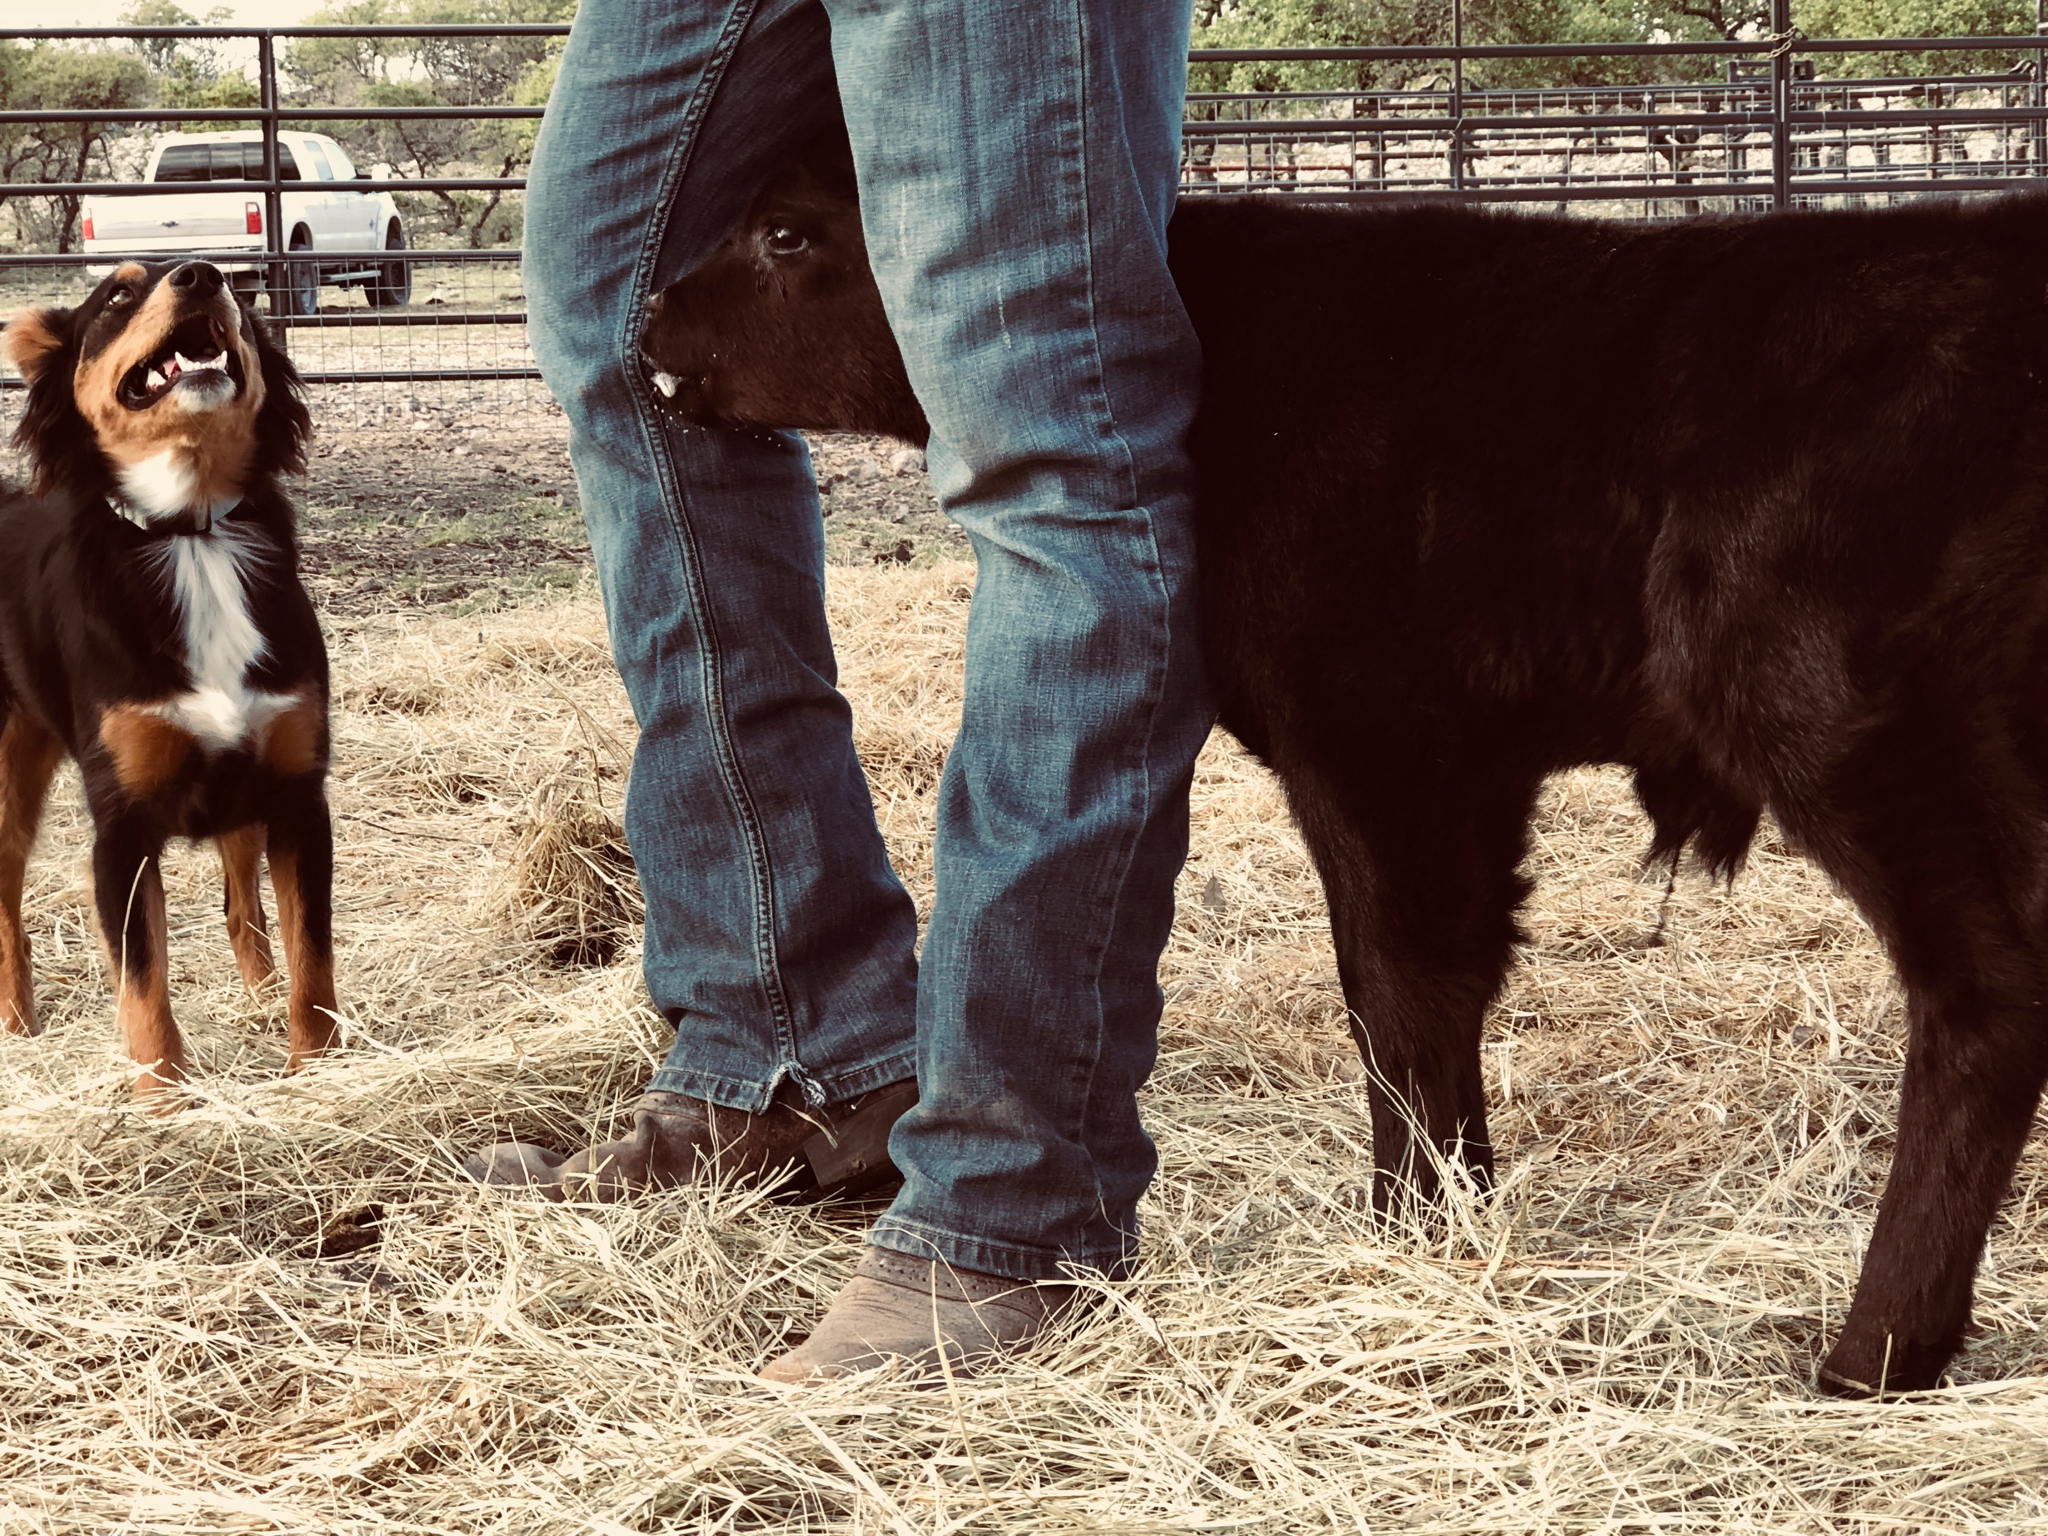 Take Action - Ready to take the next step? You can become a ranch conservationist through efficient grazing with American Aberdeen cattle yourself.